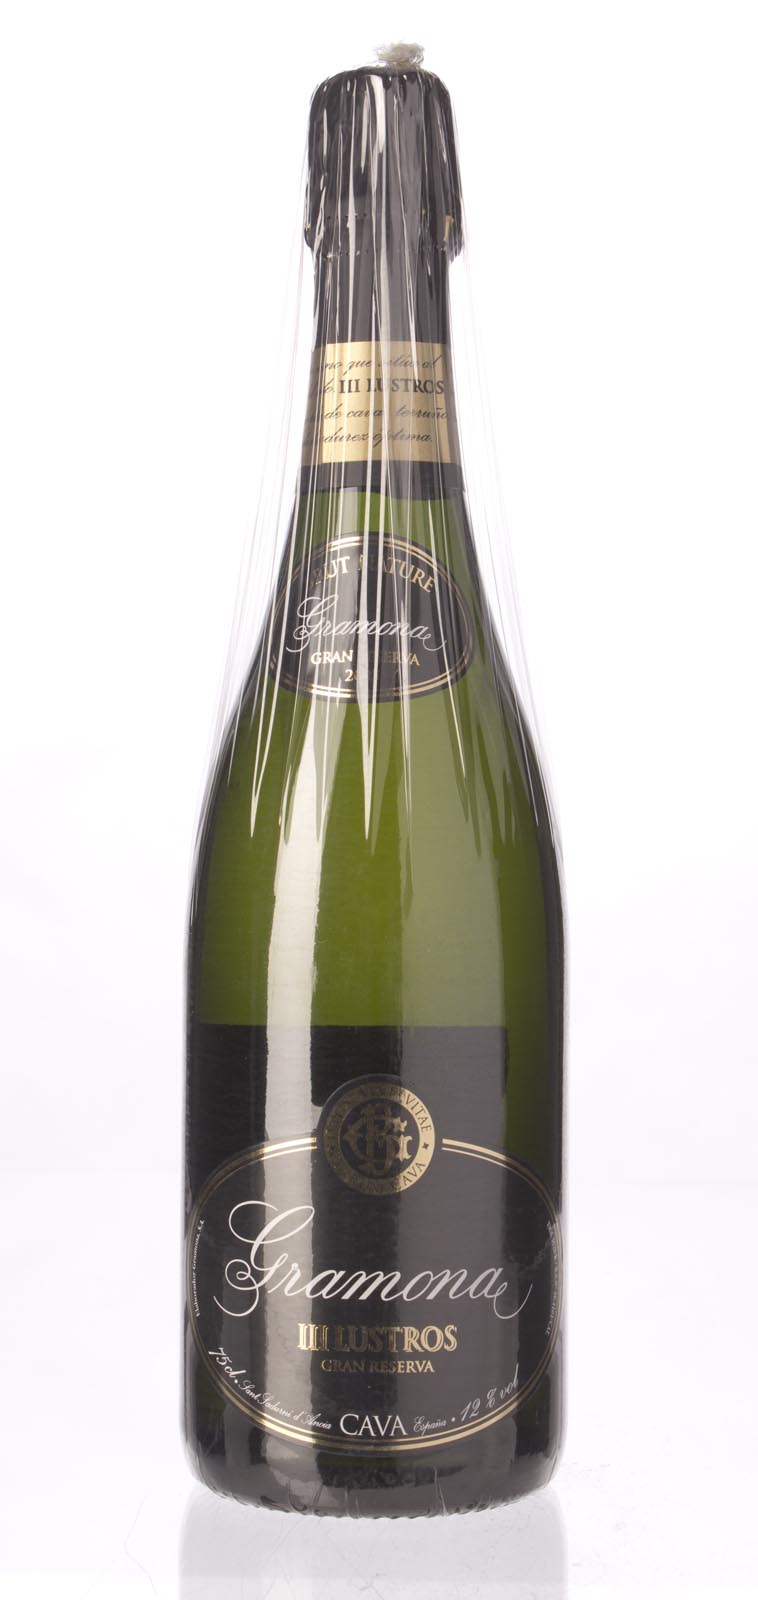 Gramona Lustros Gran Reserva Brut Nature Cava 2005, 750ml (WA95) from The BPW - Merchants of rare and fine wines.